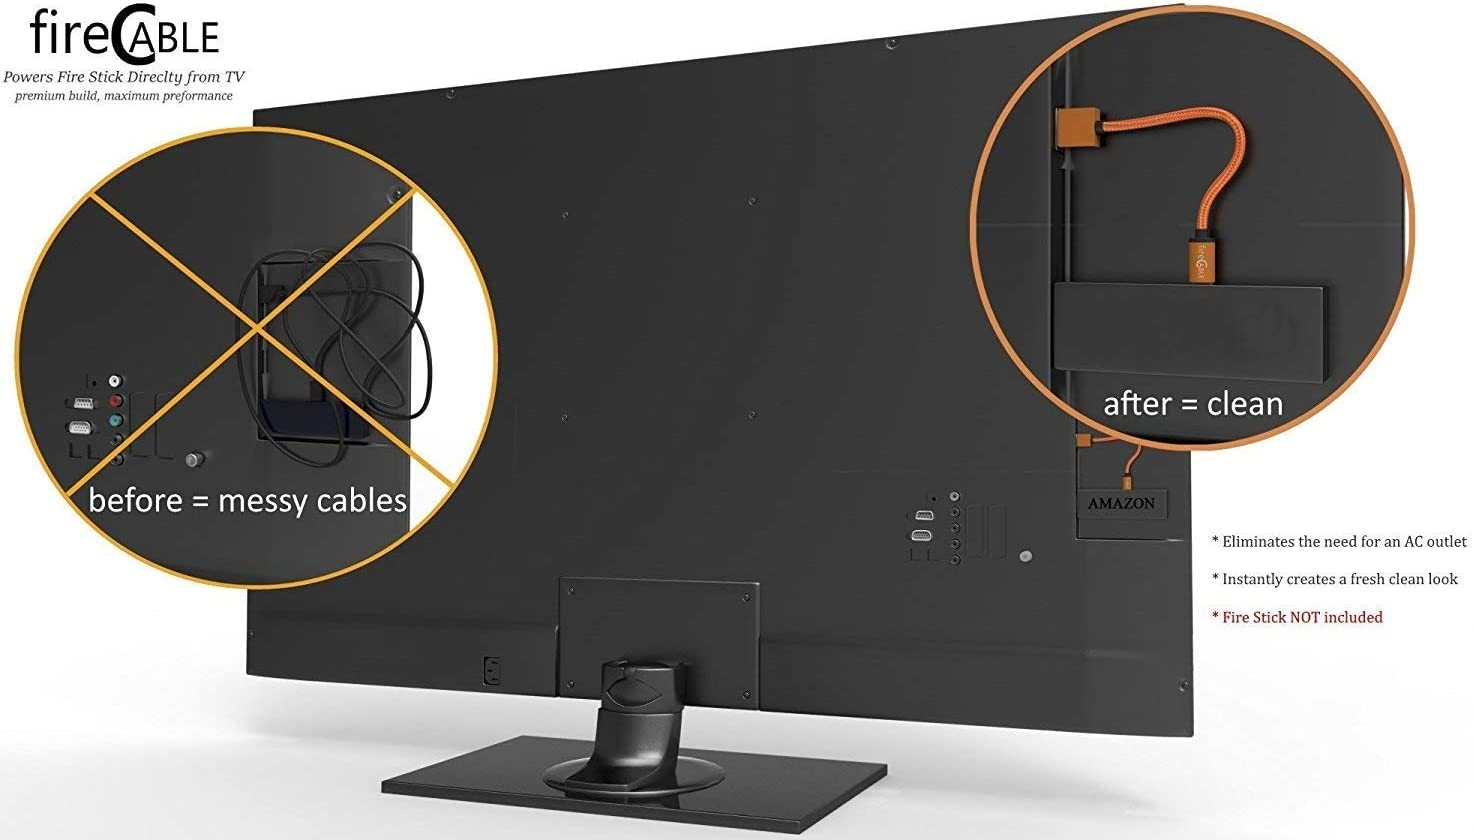 fire-Cable Plus Wireless Adapter, Powers Streaming TV Sticks Directly from TV USB Port (Eliminates AC Outlet and Cords)